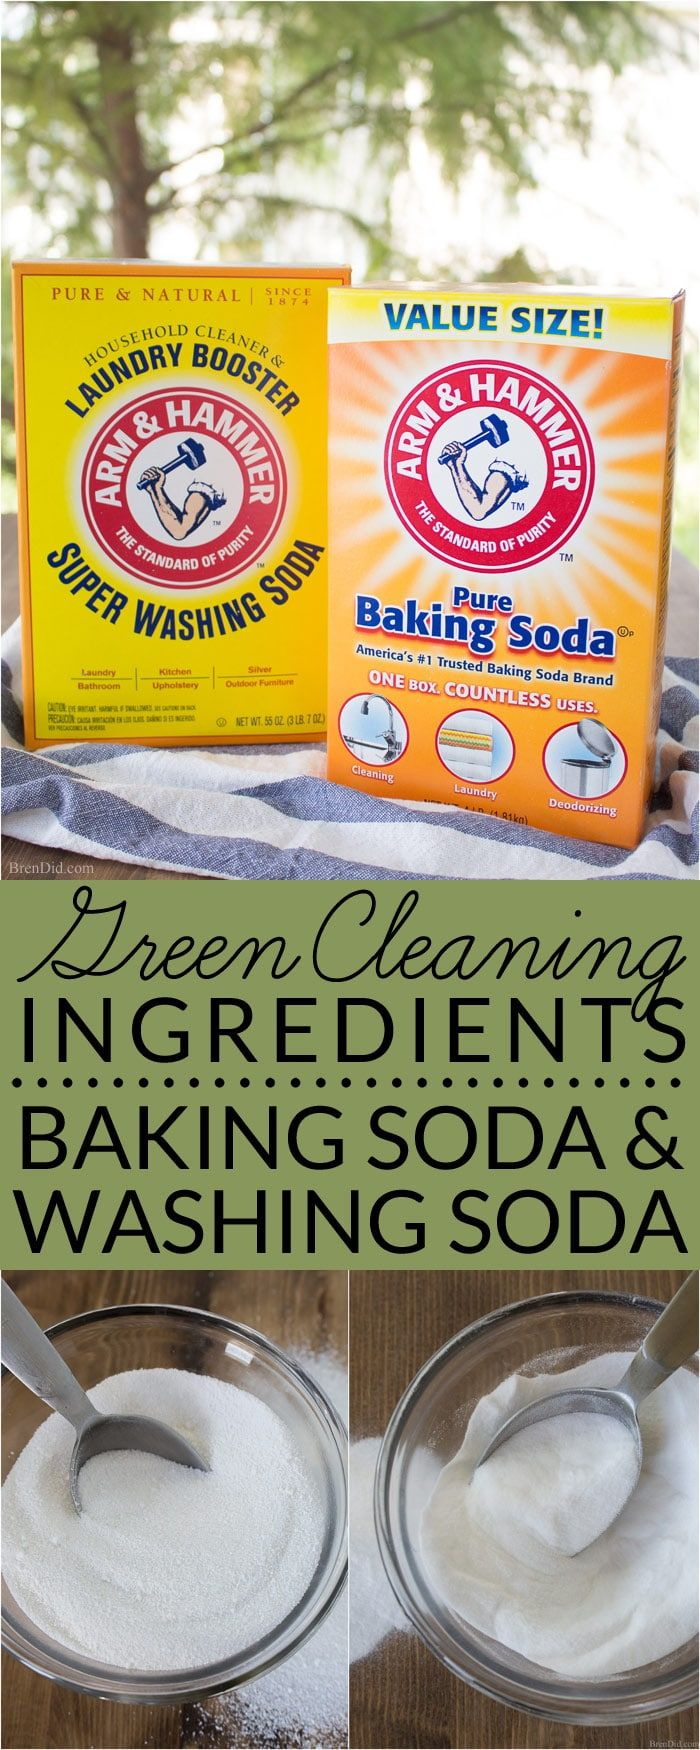 What Is The Difference Between Washing Soda And Baking Soda